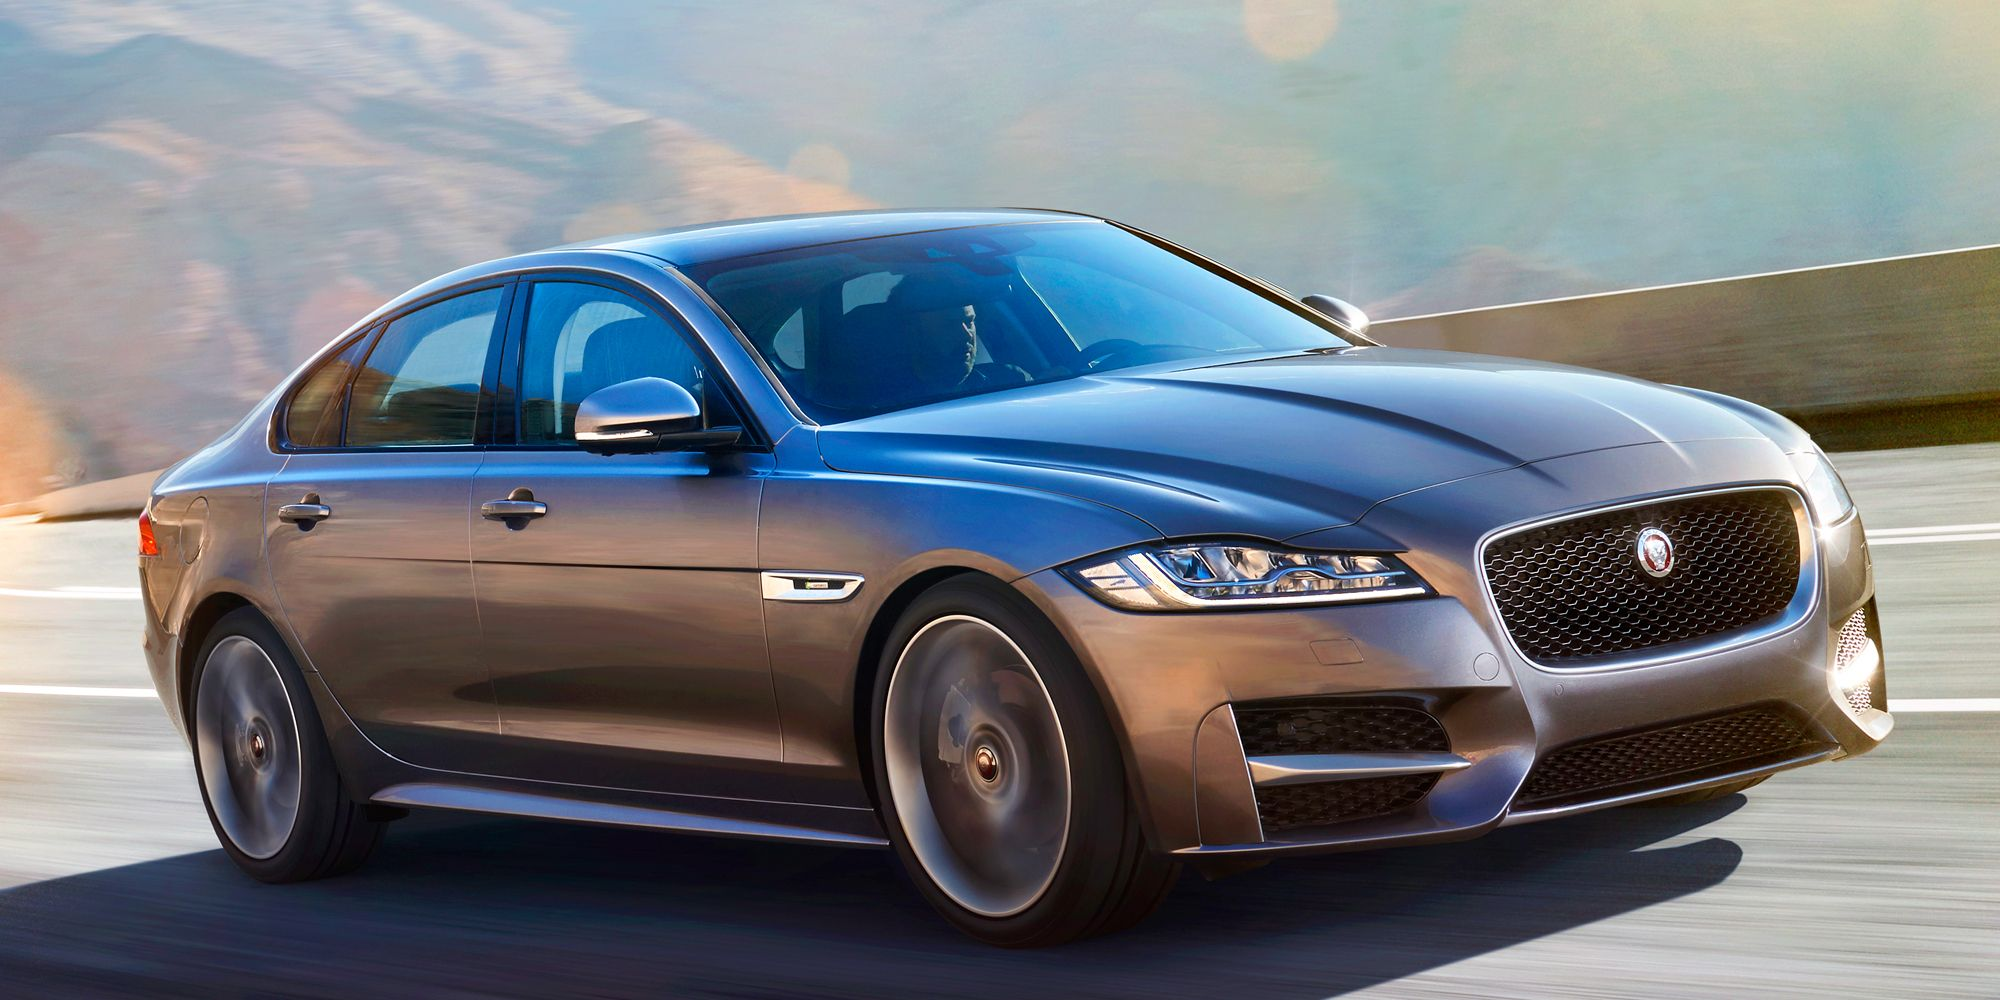 new f or htm beverly jaguar pasadena near pace los buy lease dealership inventory hills angeles a